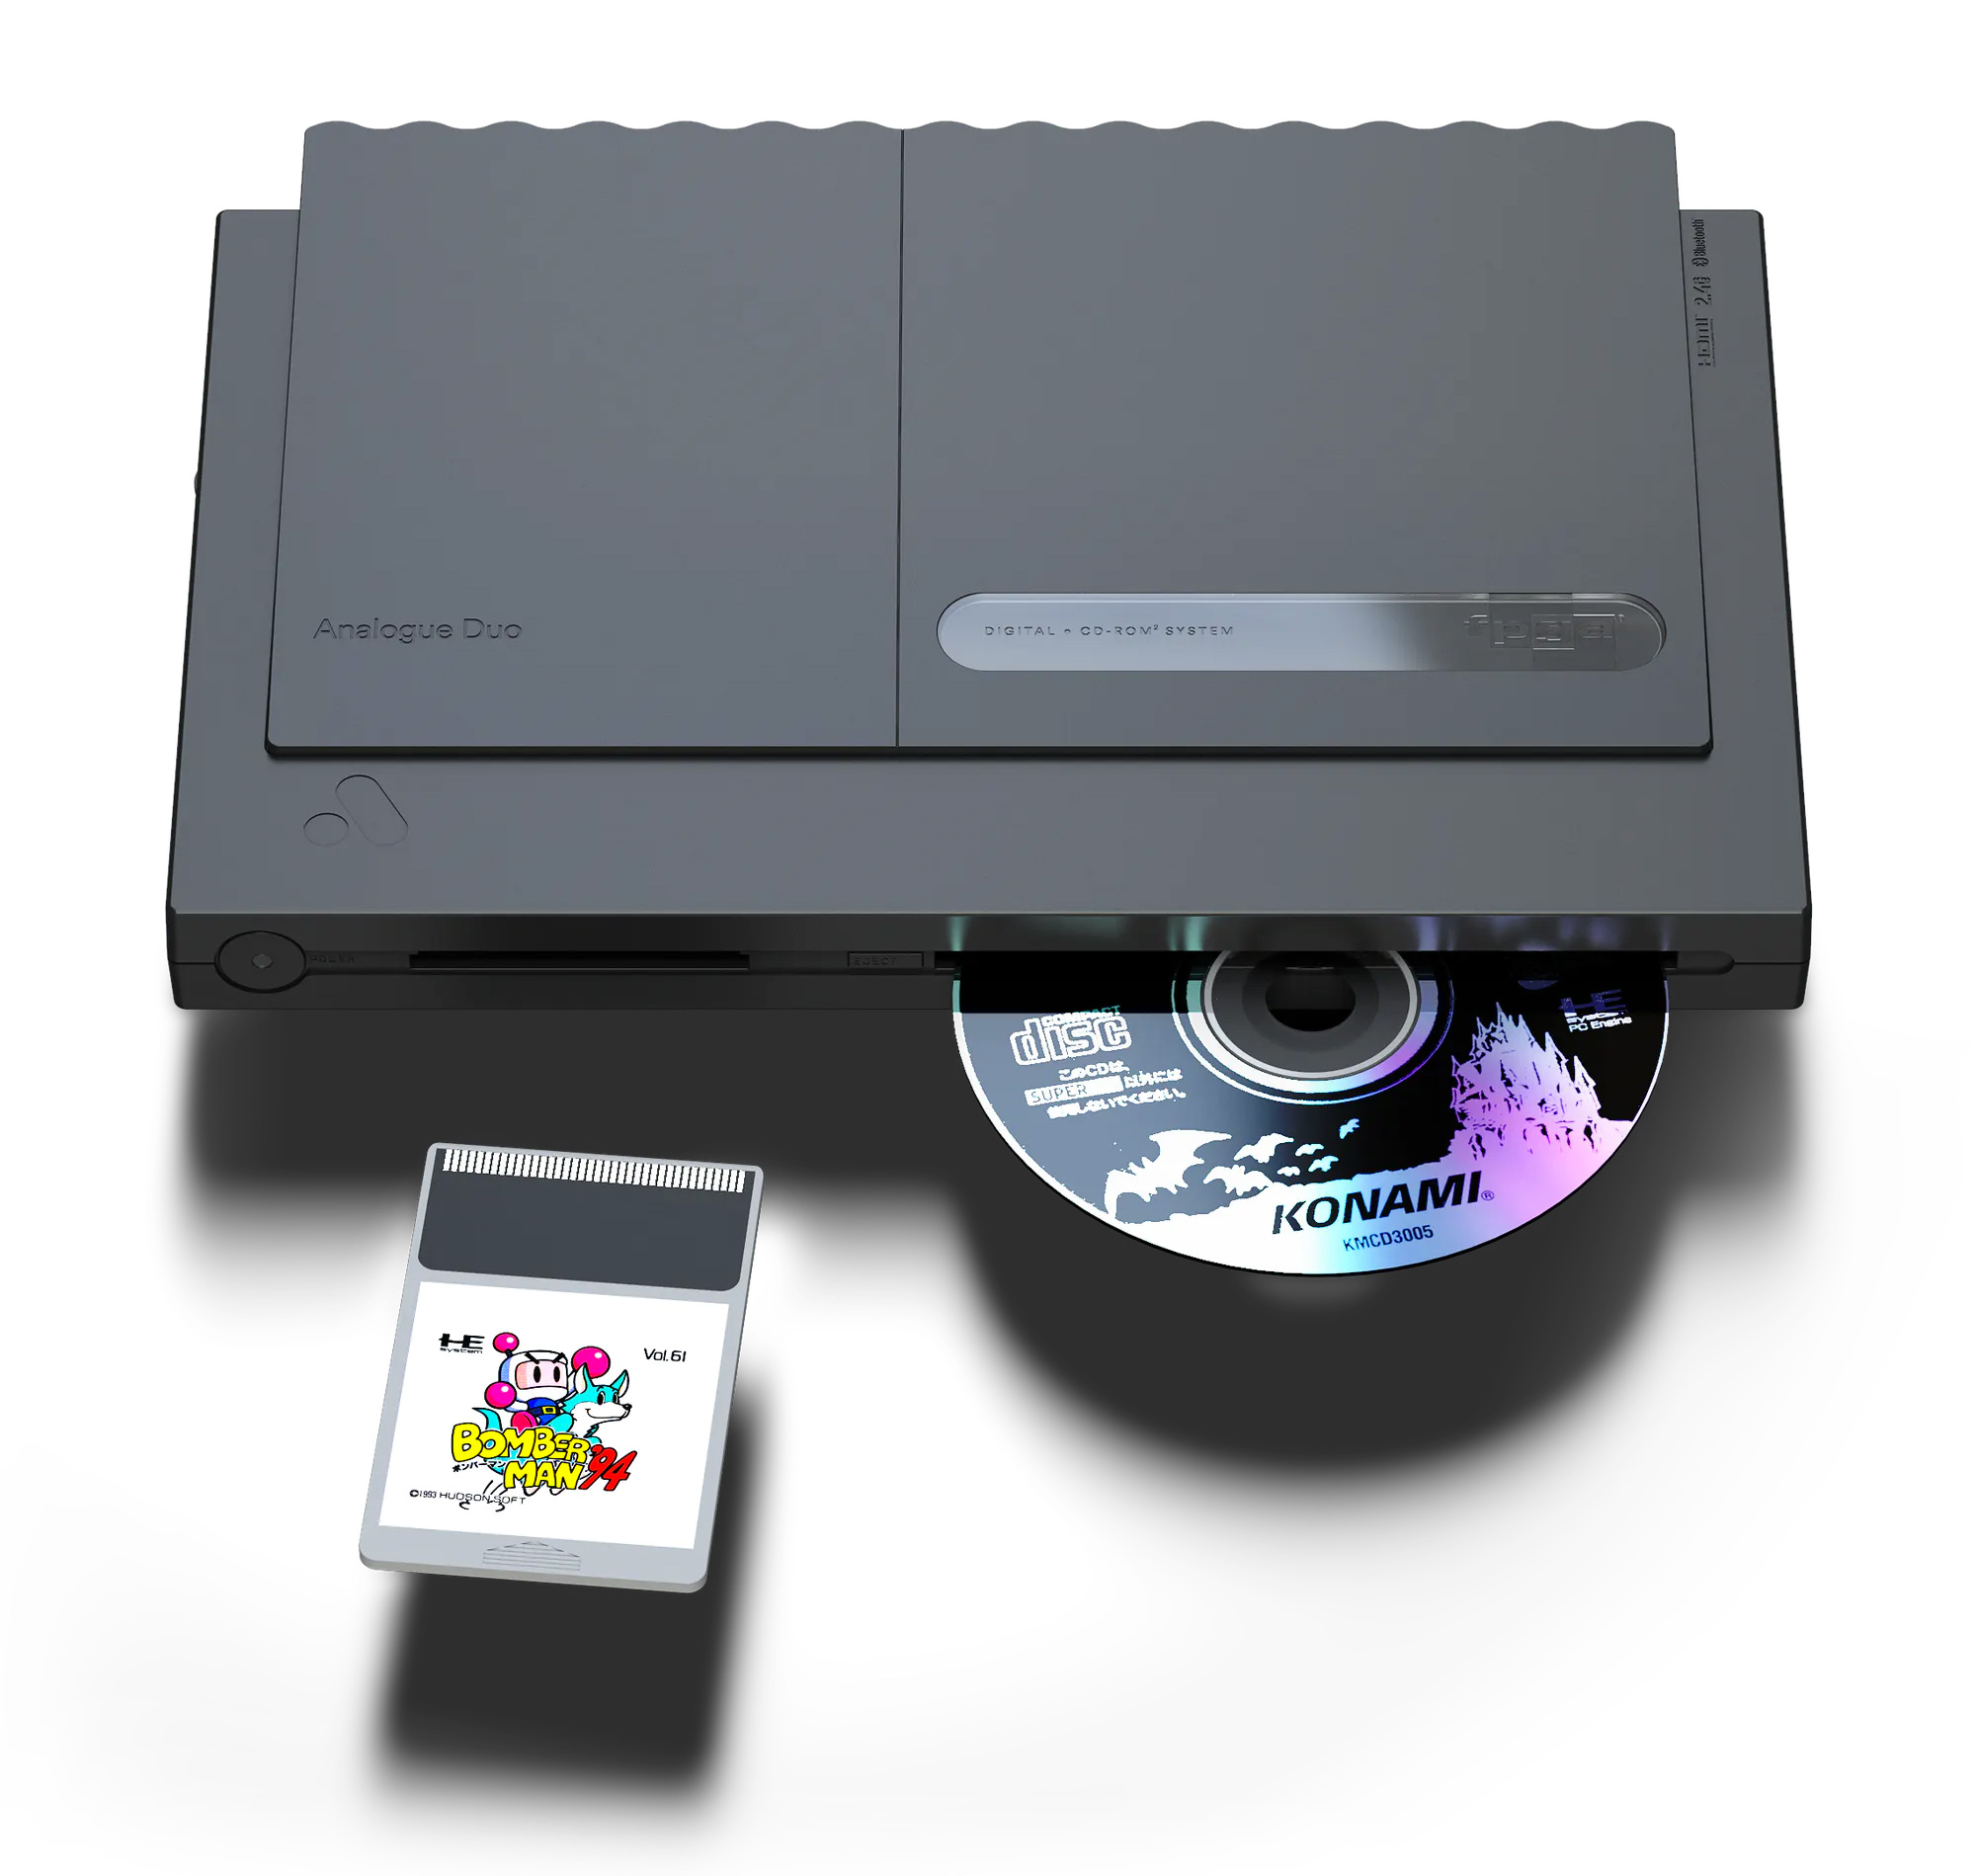 Analogue Duo System Revives Classic TurboGrafx Games at werd.com